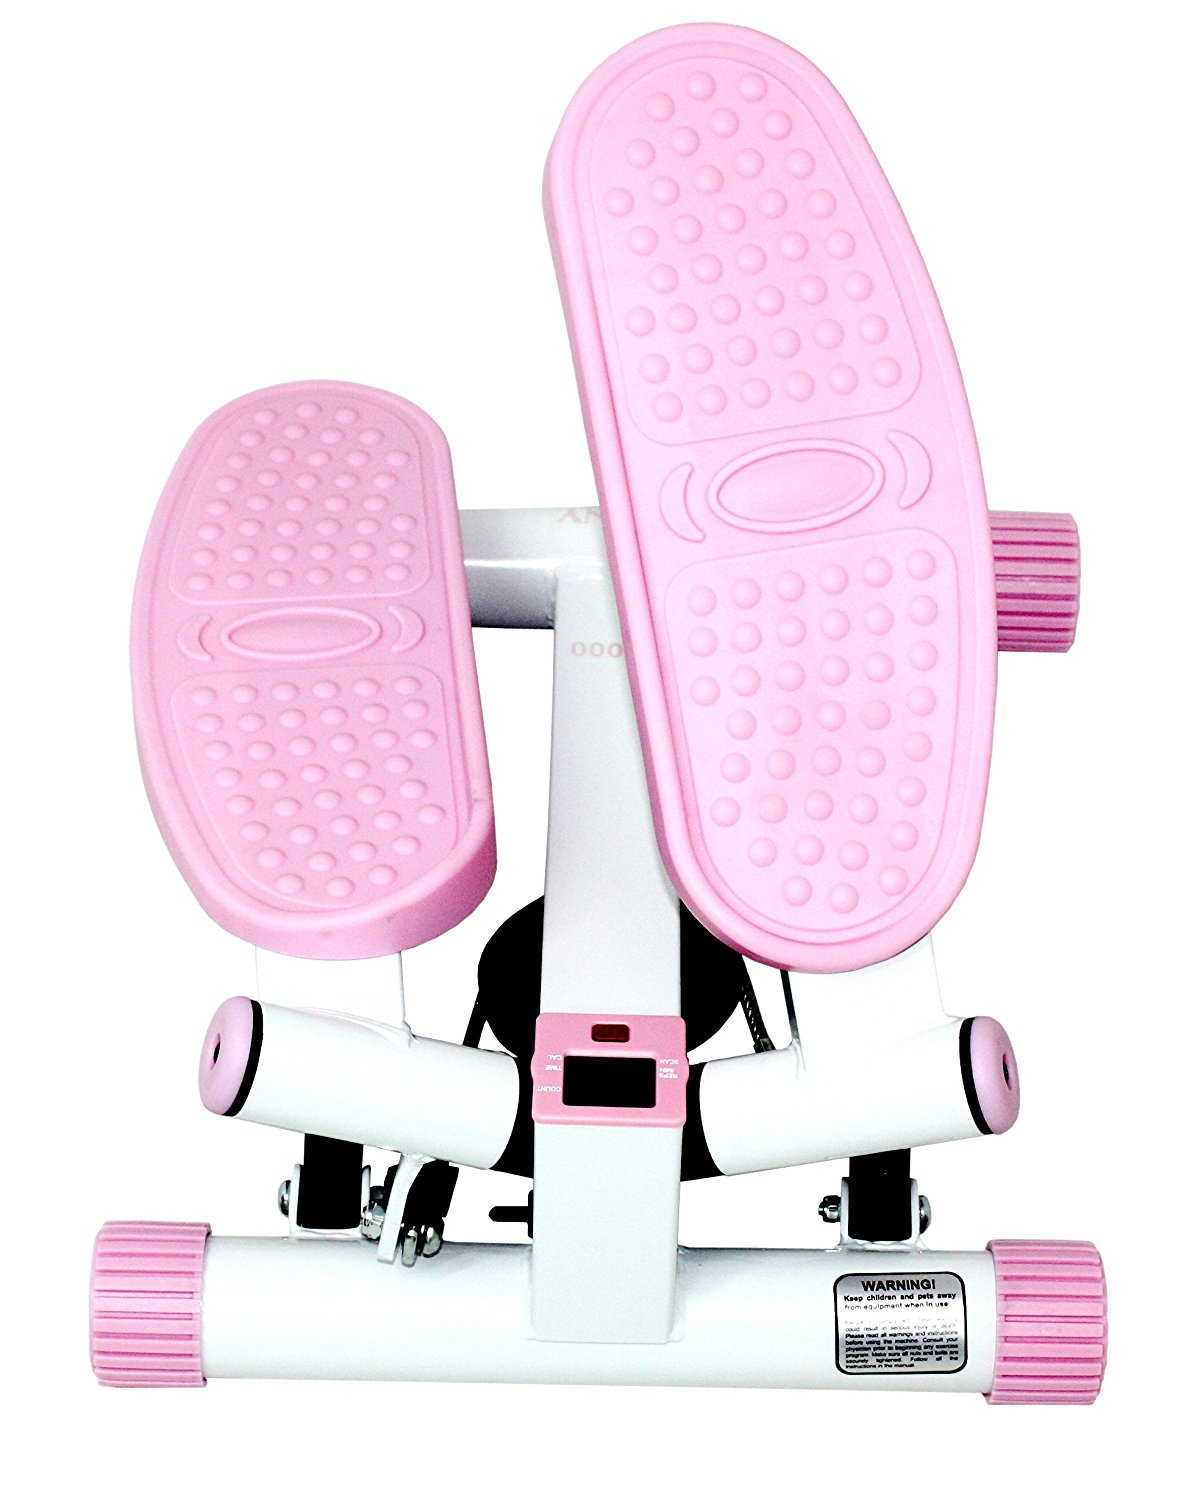 Sunny Health & Fitness Adjustable Twist Stepper